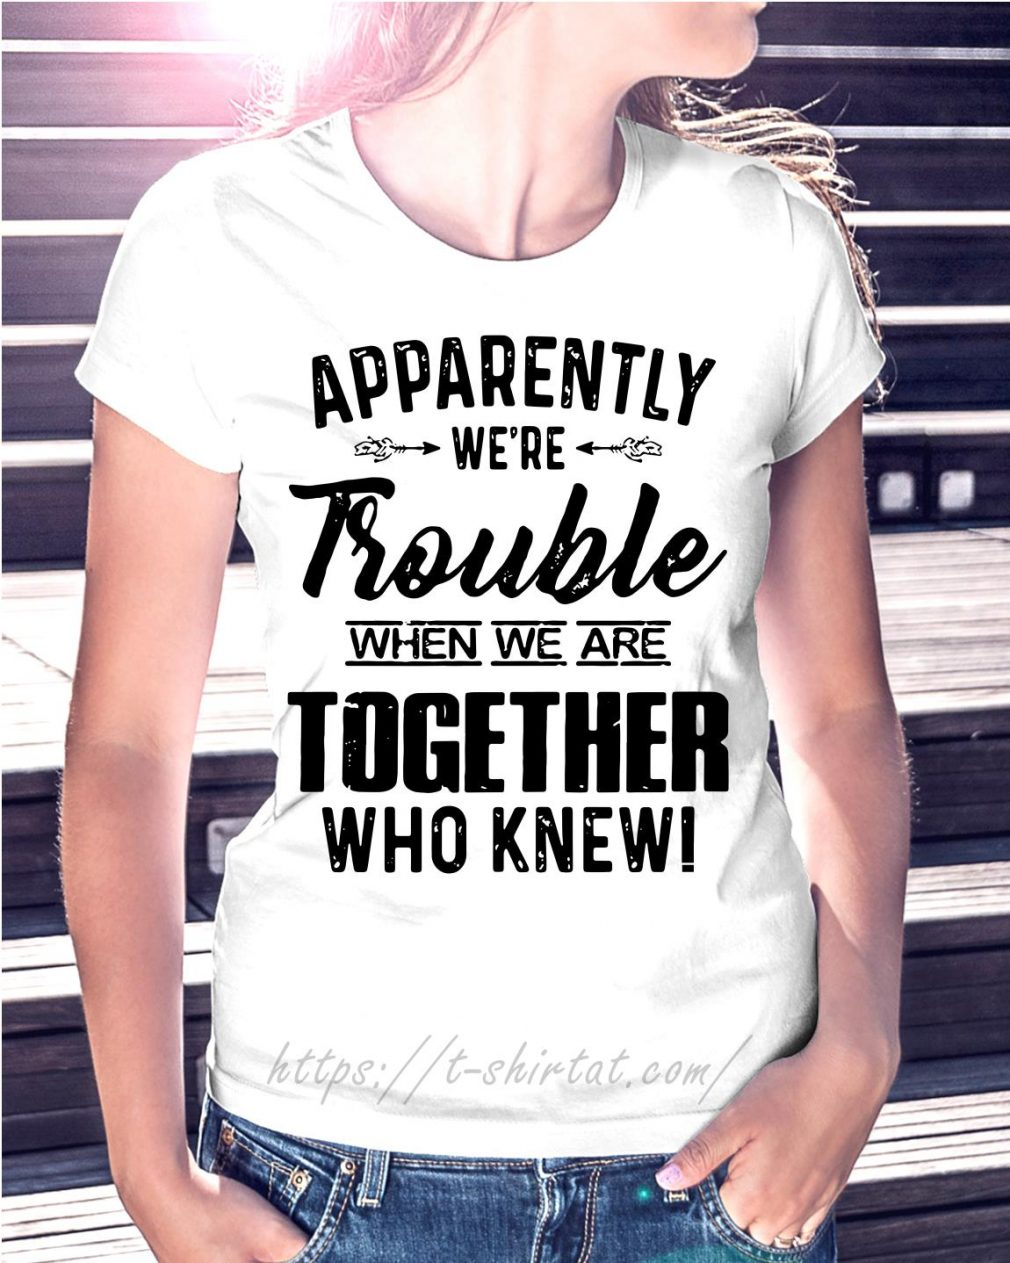 Apparently we're trouble when we are together who knew